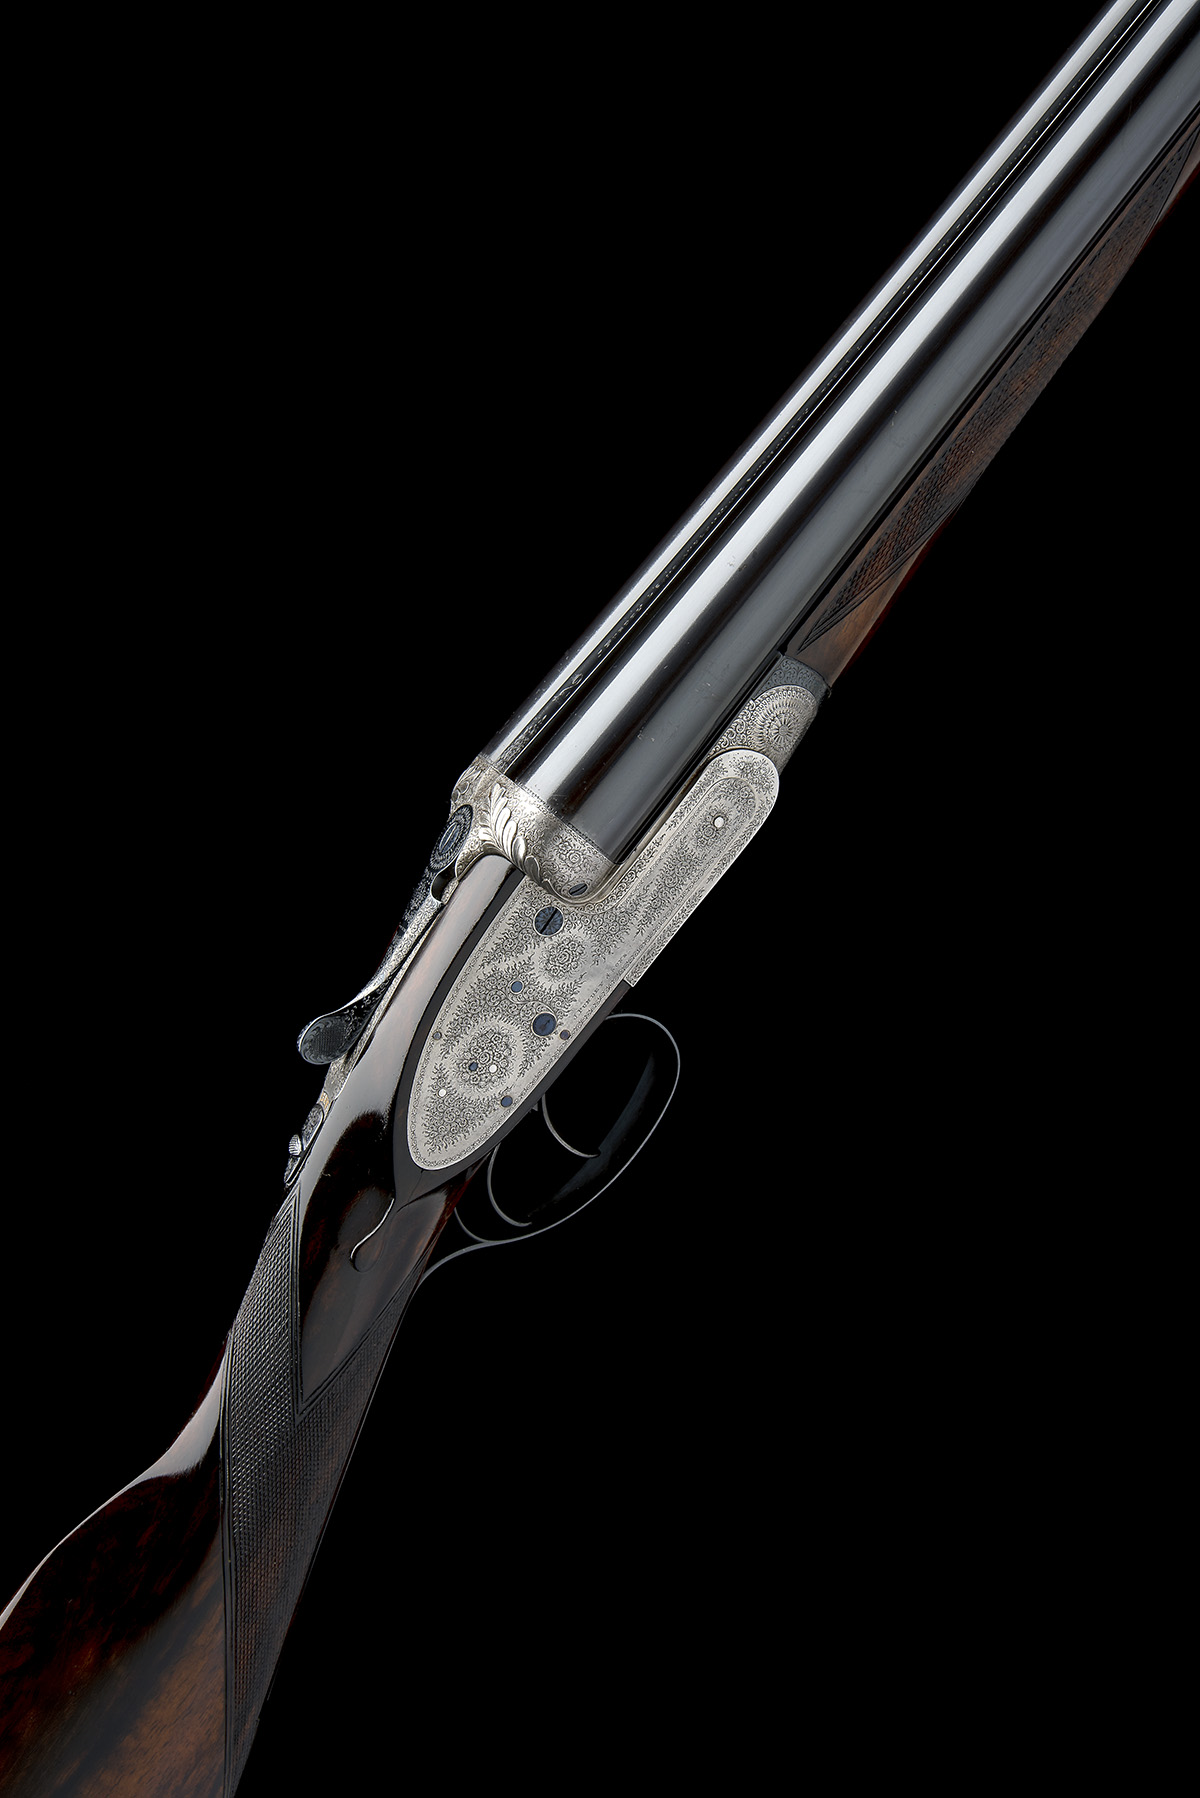 J. PURDEY & SONS A 12-BORE SELF-OPENING SIDELOCK EJECTOR, serial no. 13745, circa 1891, 29 7/8in.